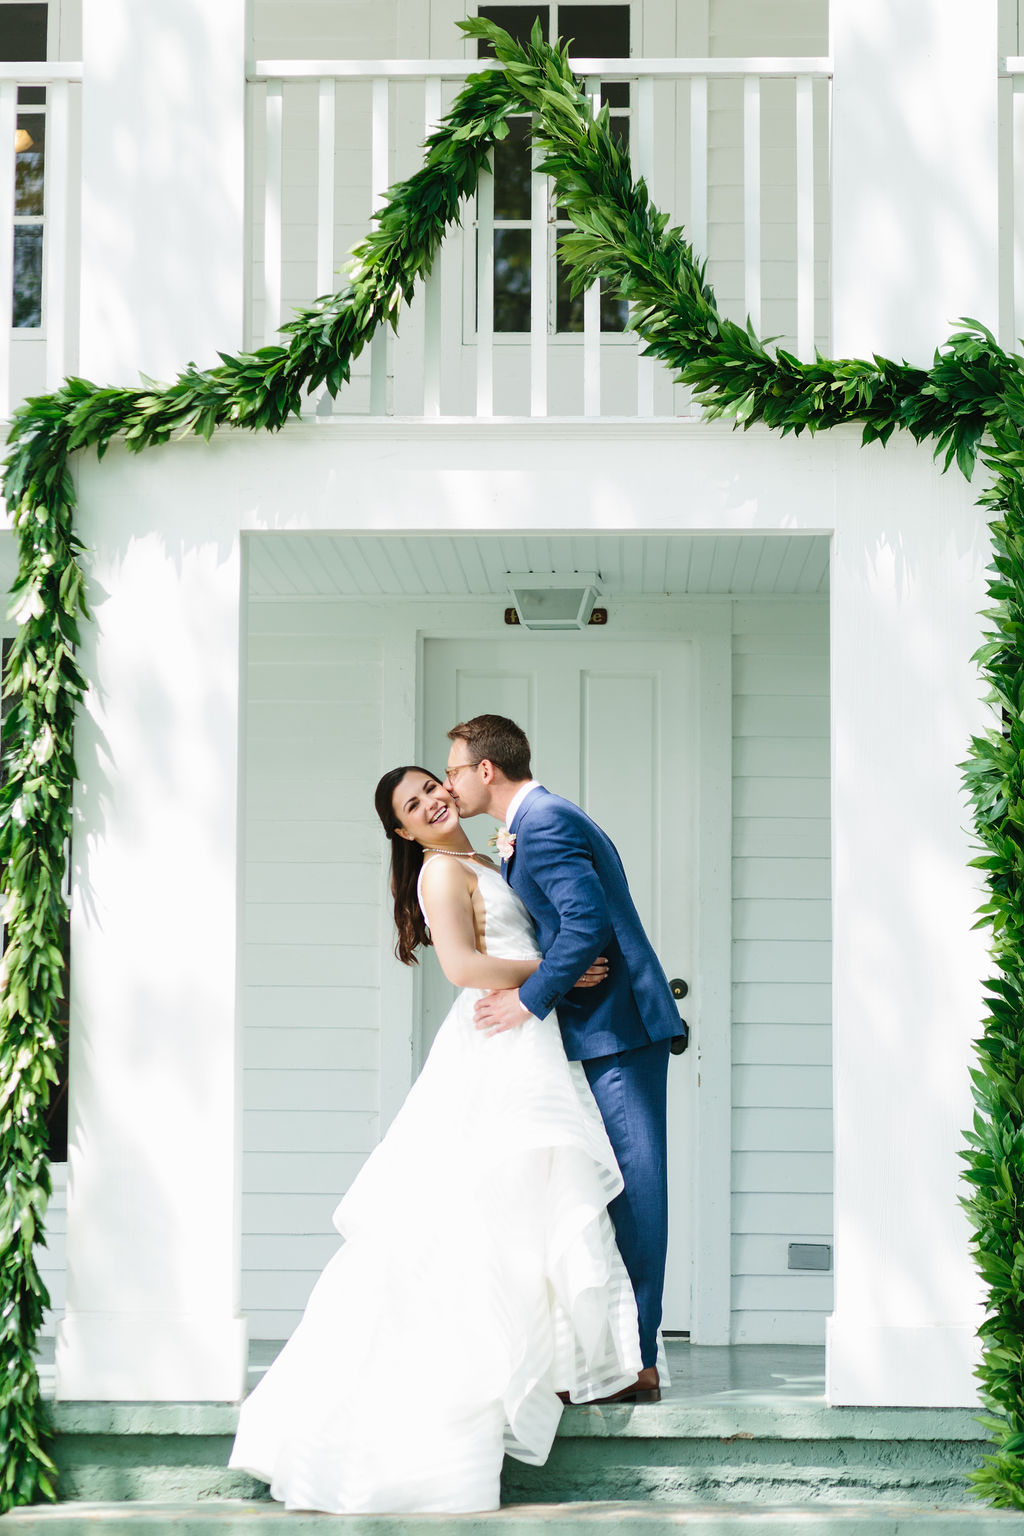 Kiss on the cheek for classic wedding portrait - Preppy spring wedding at Zingerman's Cornman Farms - Leah E. Moss Designs - photo by Katie Grace Photography